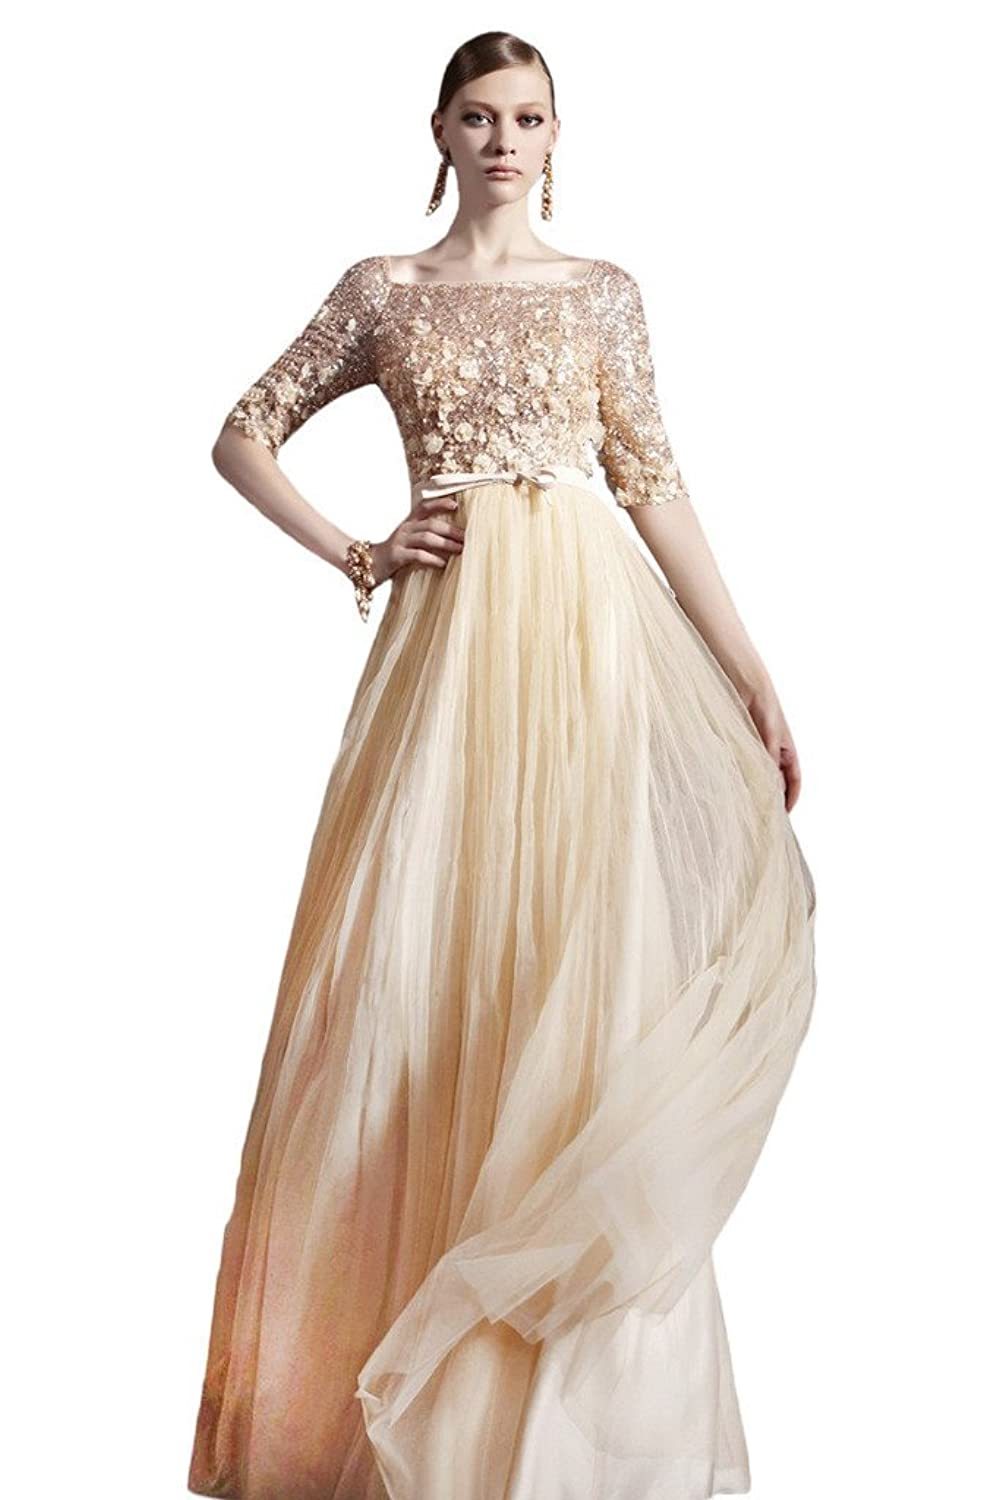 Snowskite High neck Sequins Beading Champagne Evening Party Dress